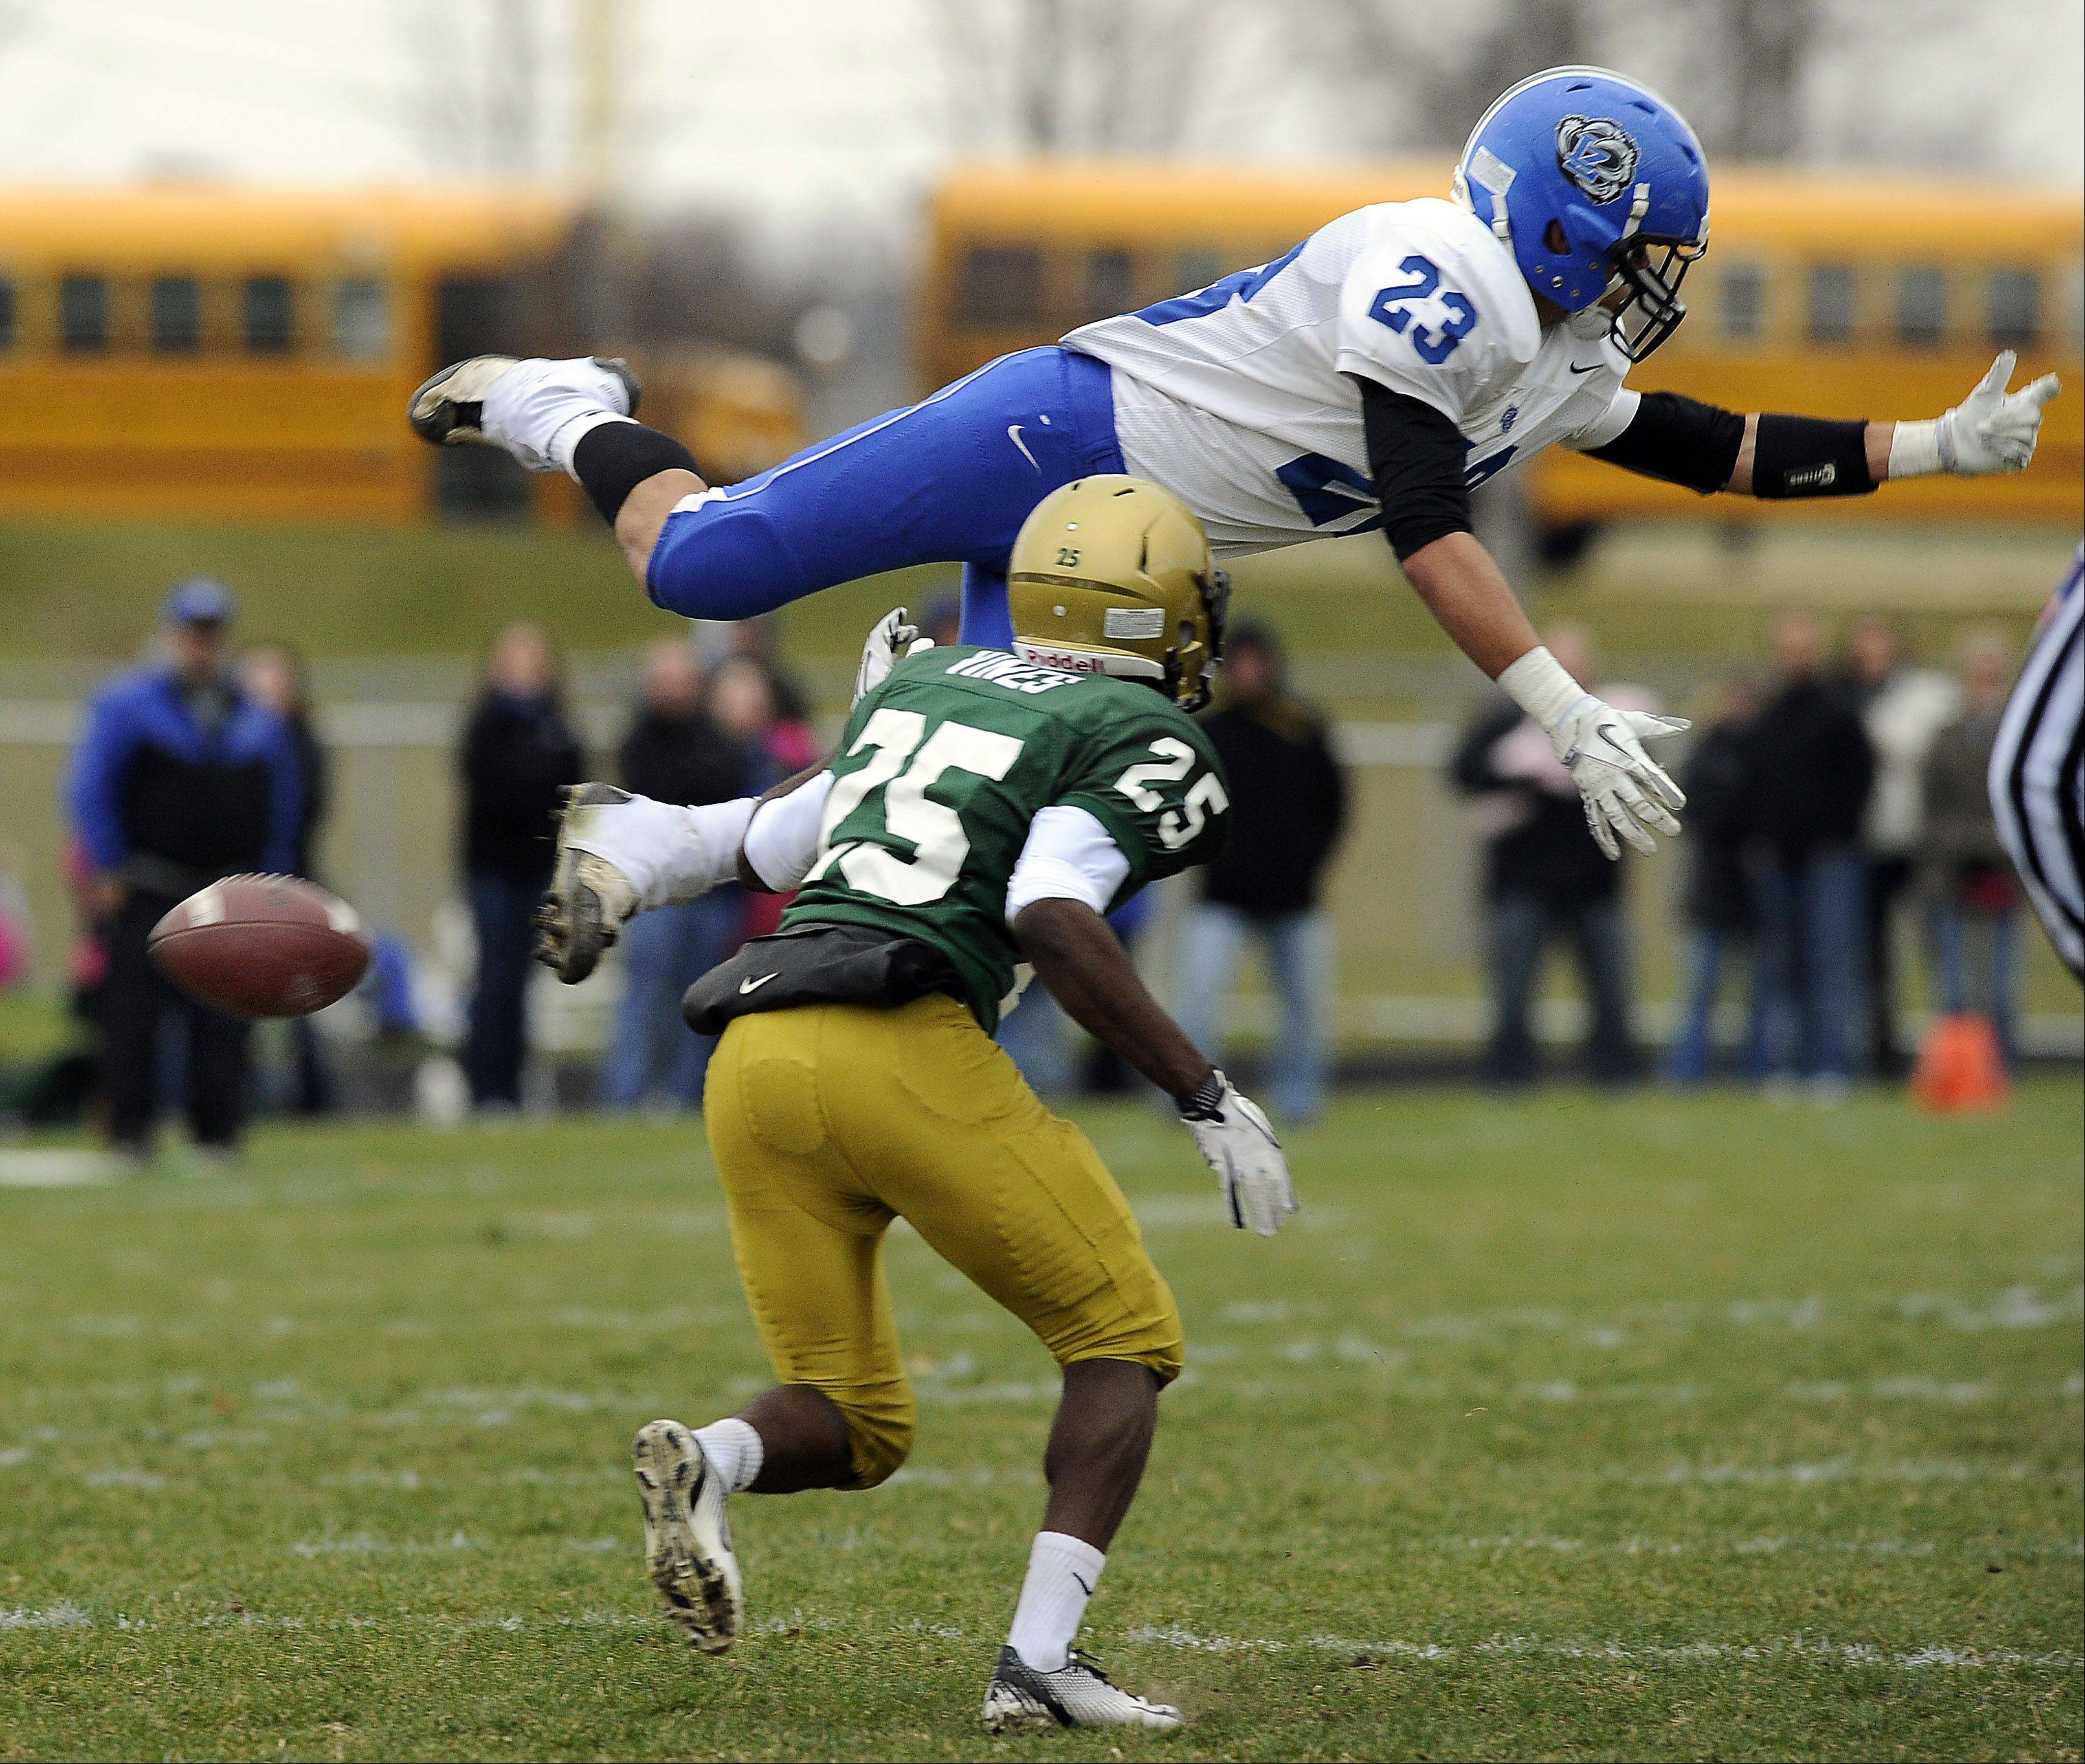 Lake Zurich's Grant Soucy soars over Rockford Boylan's DeMarcus Vines during the second quarter of the teams' Class 7A state semifinal matchup last season in Rockford. This year they're meeting in the quarterfinals, at 1 p.m. Saturday at Lake Zurich, with both Soucy and Vines again key players for their teams.